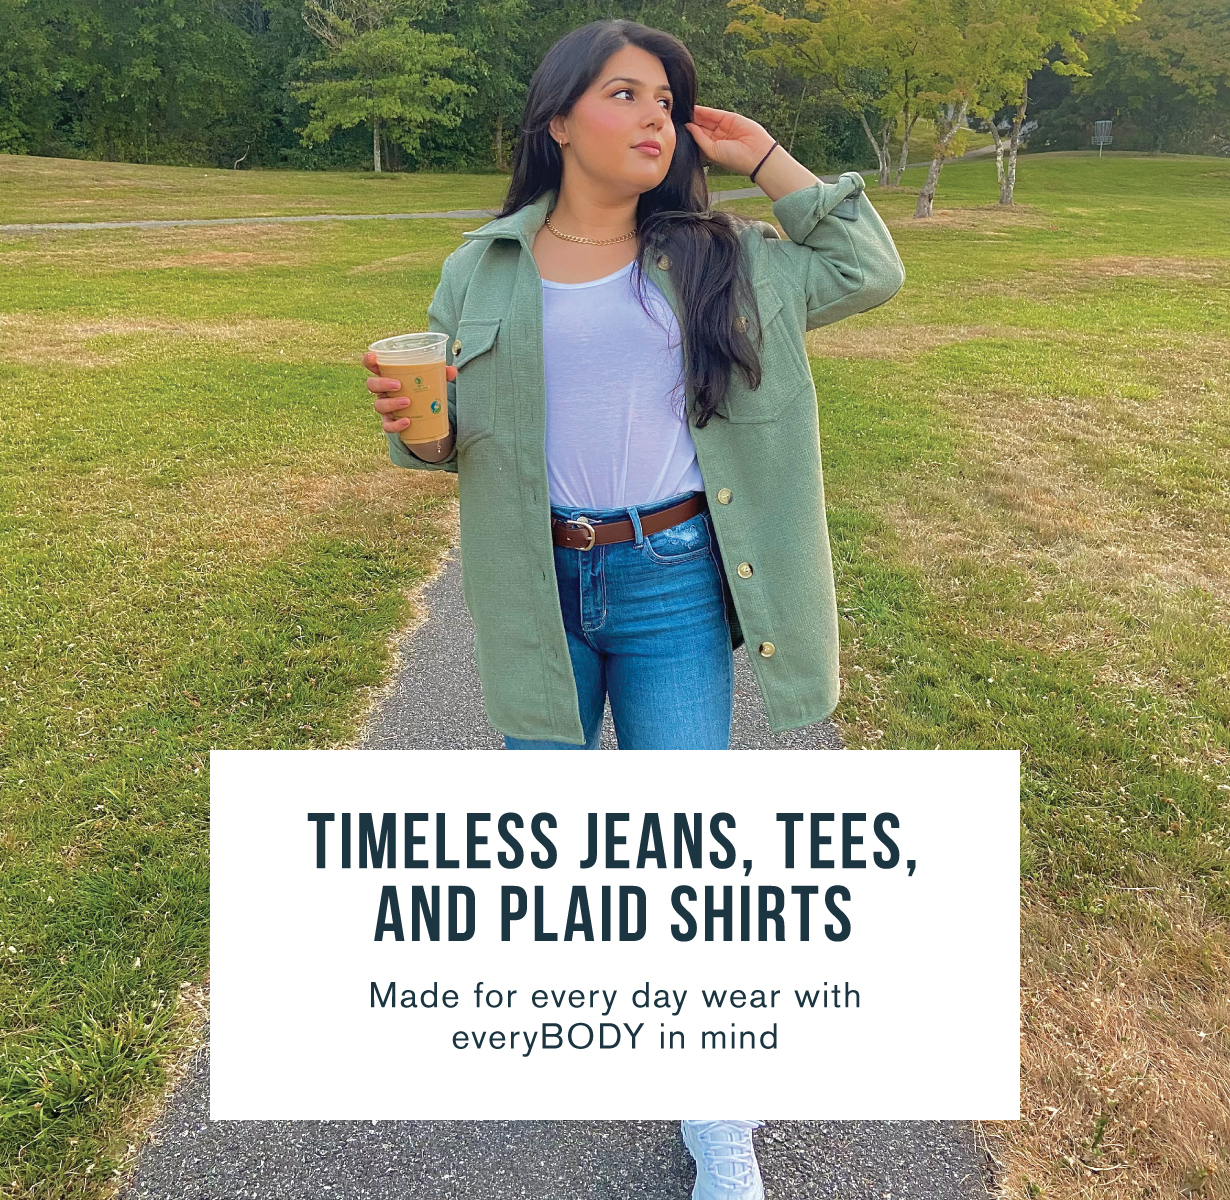 Timeless jeans, tees, and plaid shirts. Made for every day wear with everybody in mind.